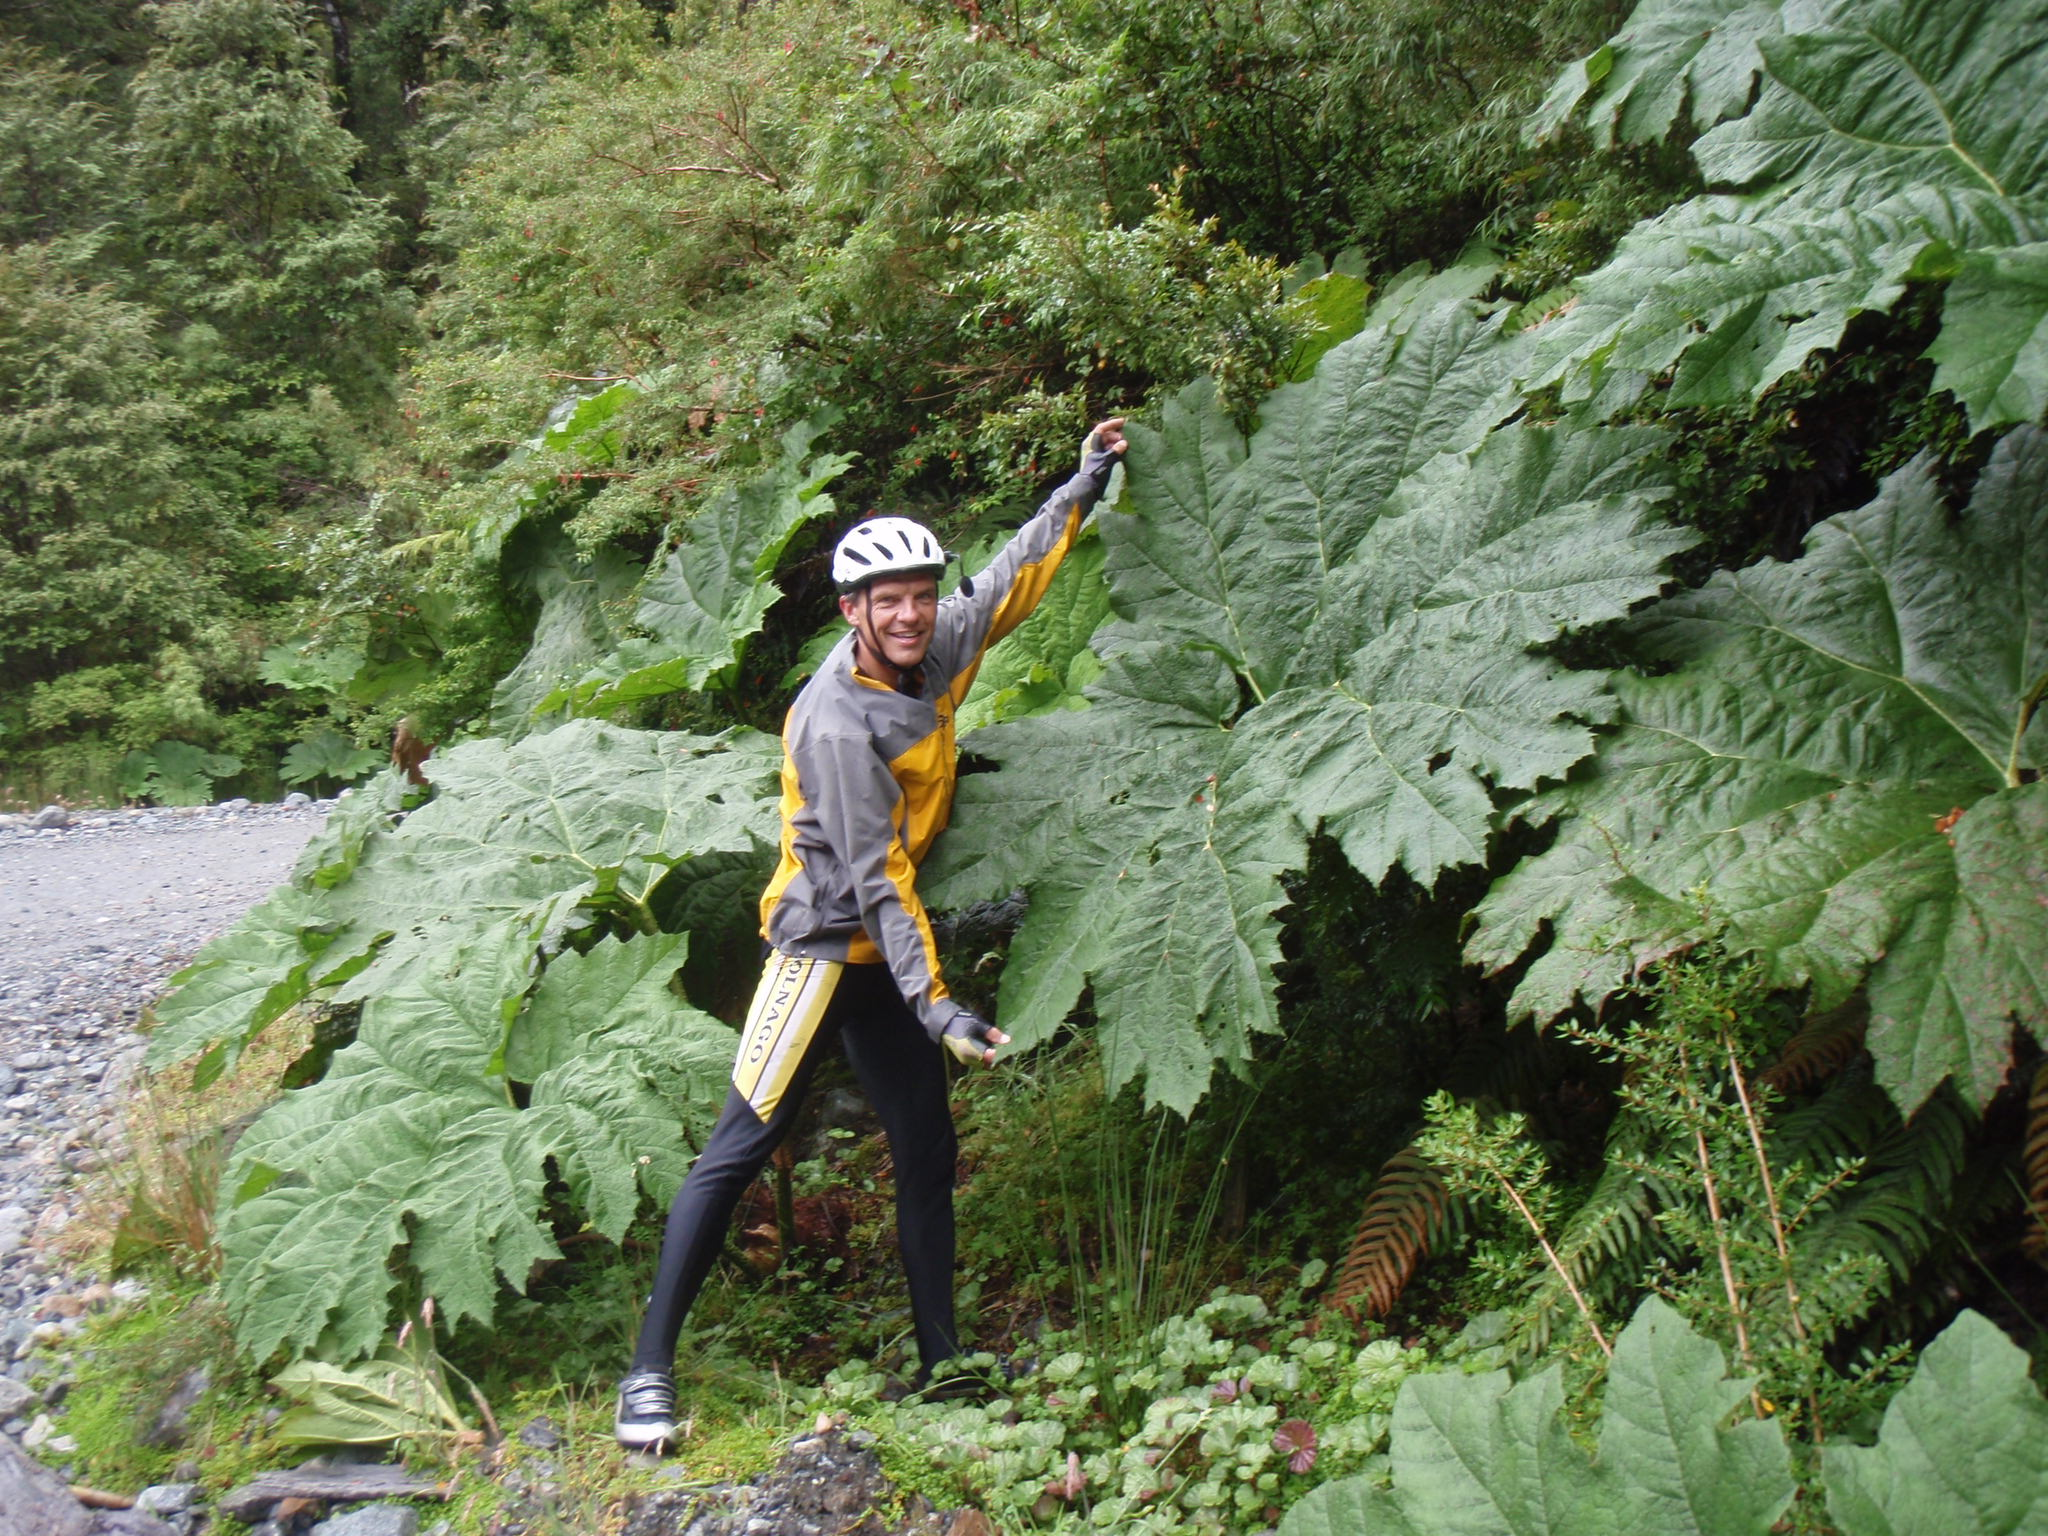 Huge leaf of Nalca plant along pass road on Carreterra Austral